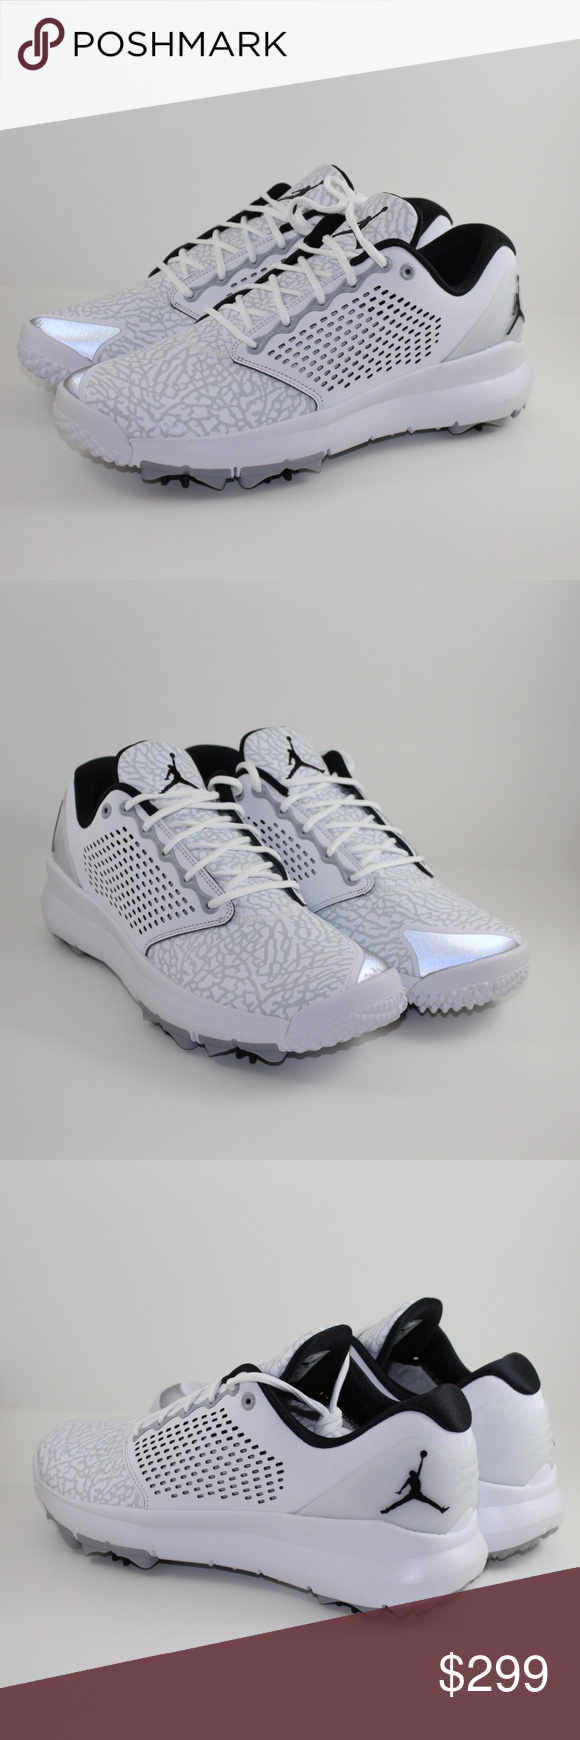 new concept 34b5c 359db Nike Air Jordan Trainer ST G Golf Shoe Nike Air Jordan Trainer ST G Golf  Shoe White Black Wolf Grey Nike Ser.  AH7747-100 Brand New Golf Shoes  without the ...